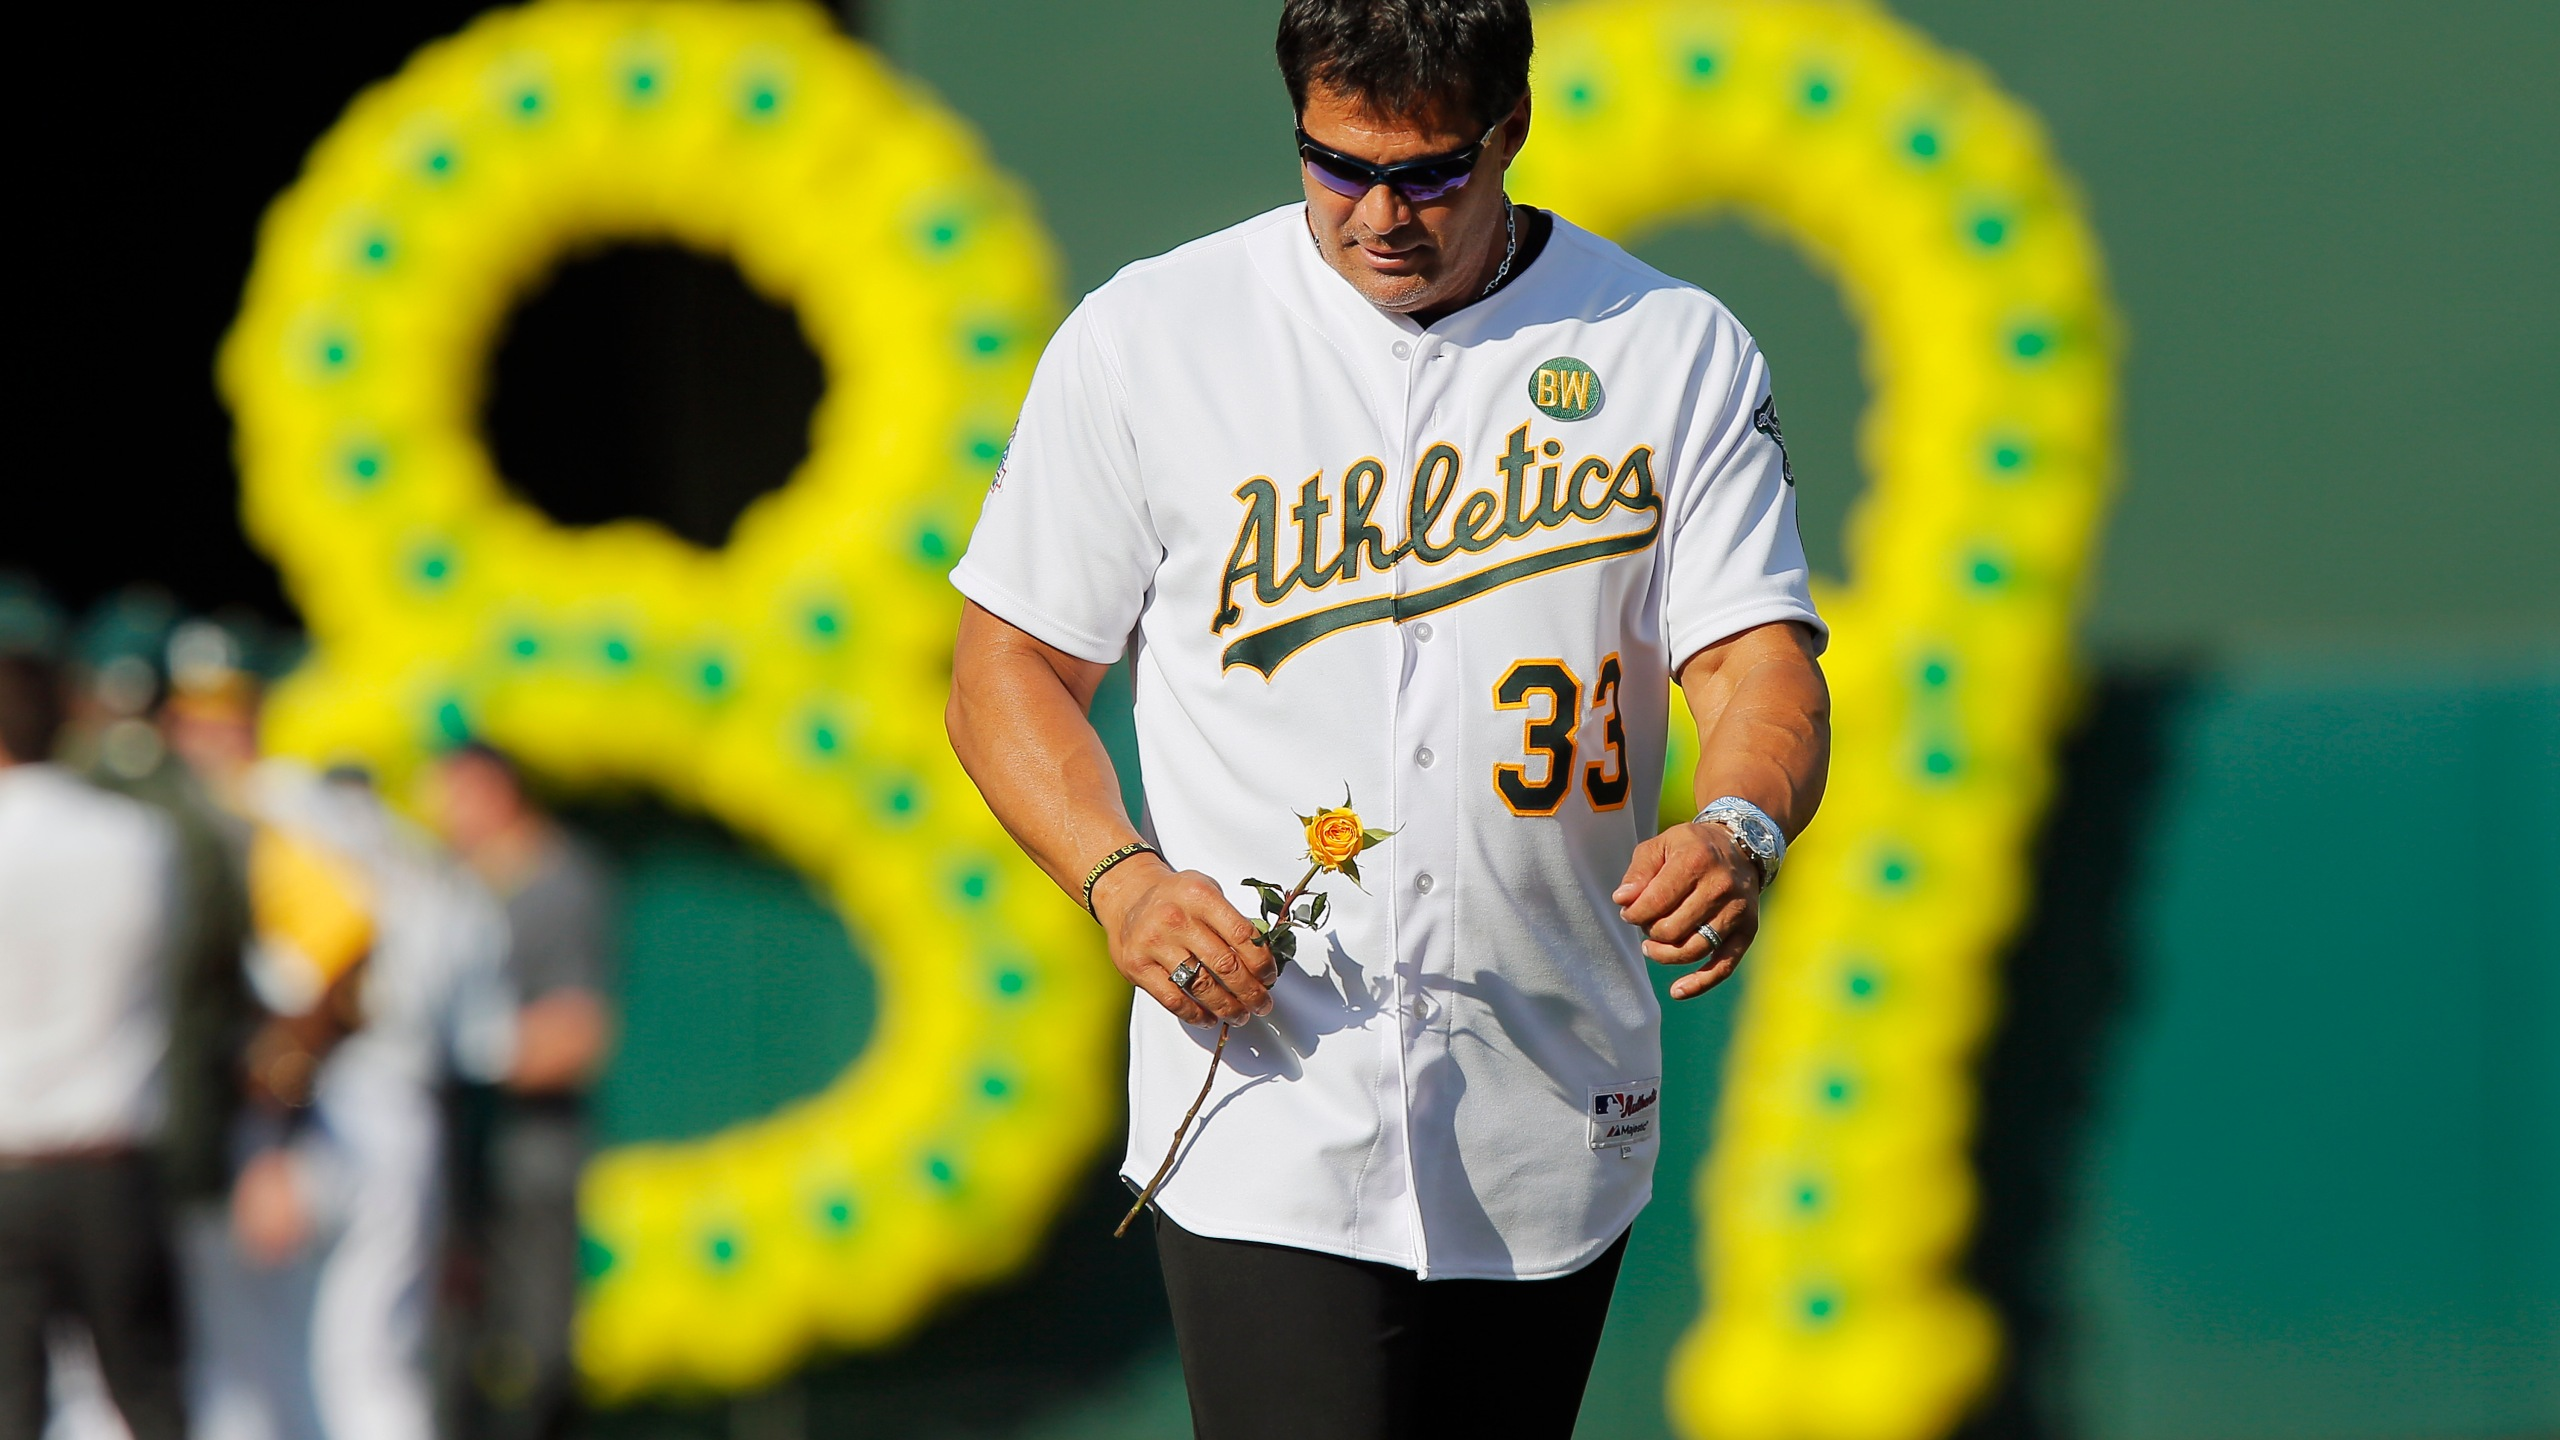 Jose Canseco of the 1989 Oakland A's joins his teammates as they celebrate their World Series championship 25 years ago on July 19, 2014 in Oakland. (Credit: Brian Bahr/Getty Images)